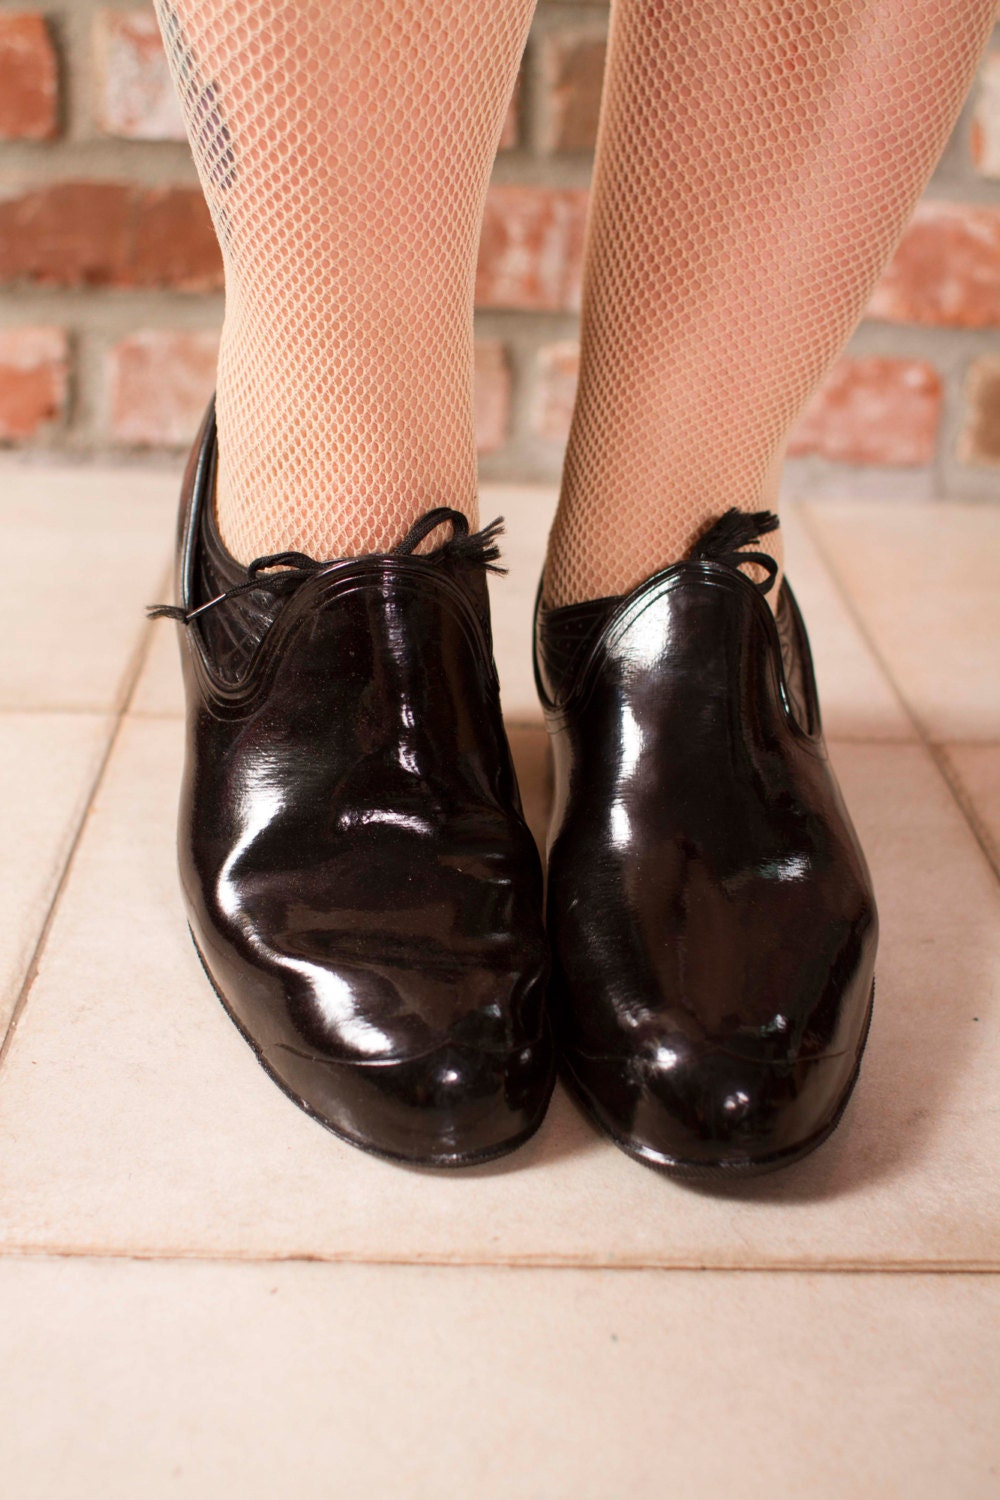 vintage 1940s shoe covers rubber overshoe boots with